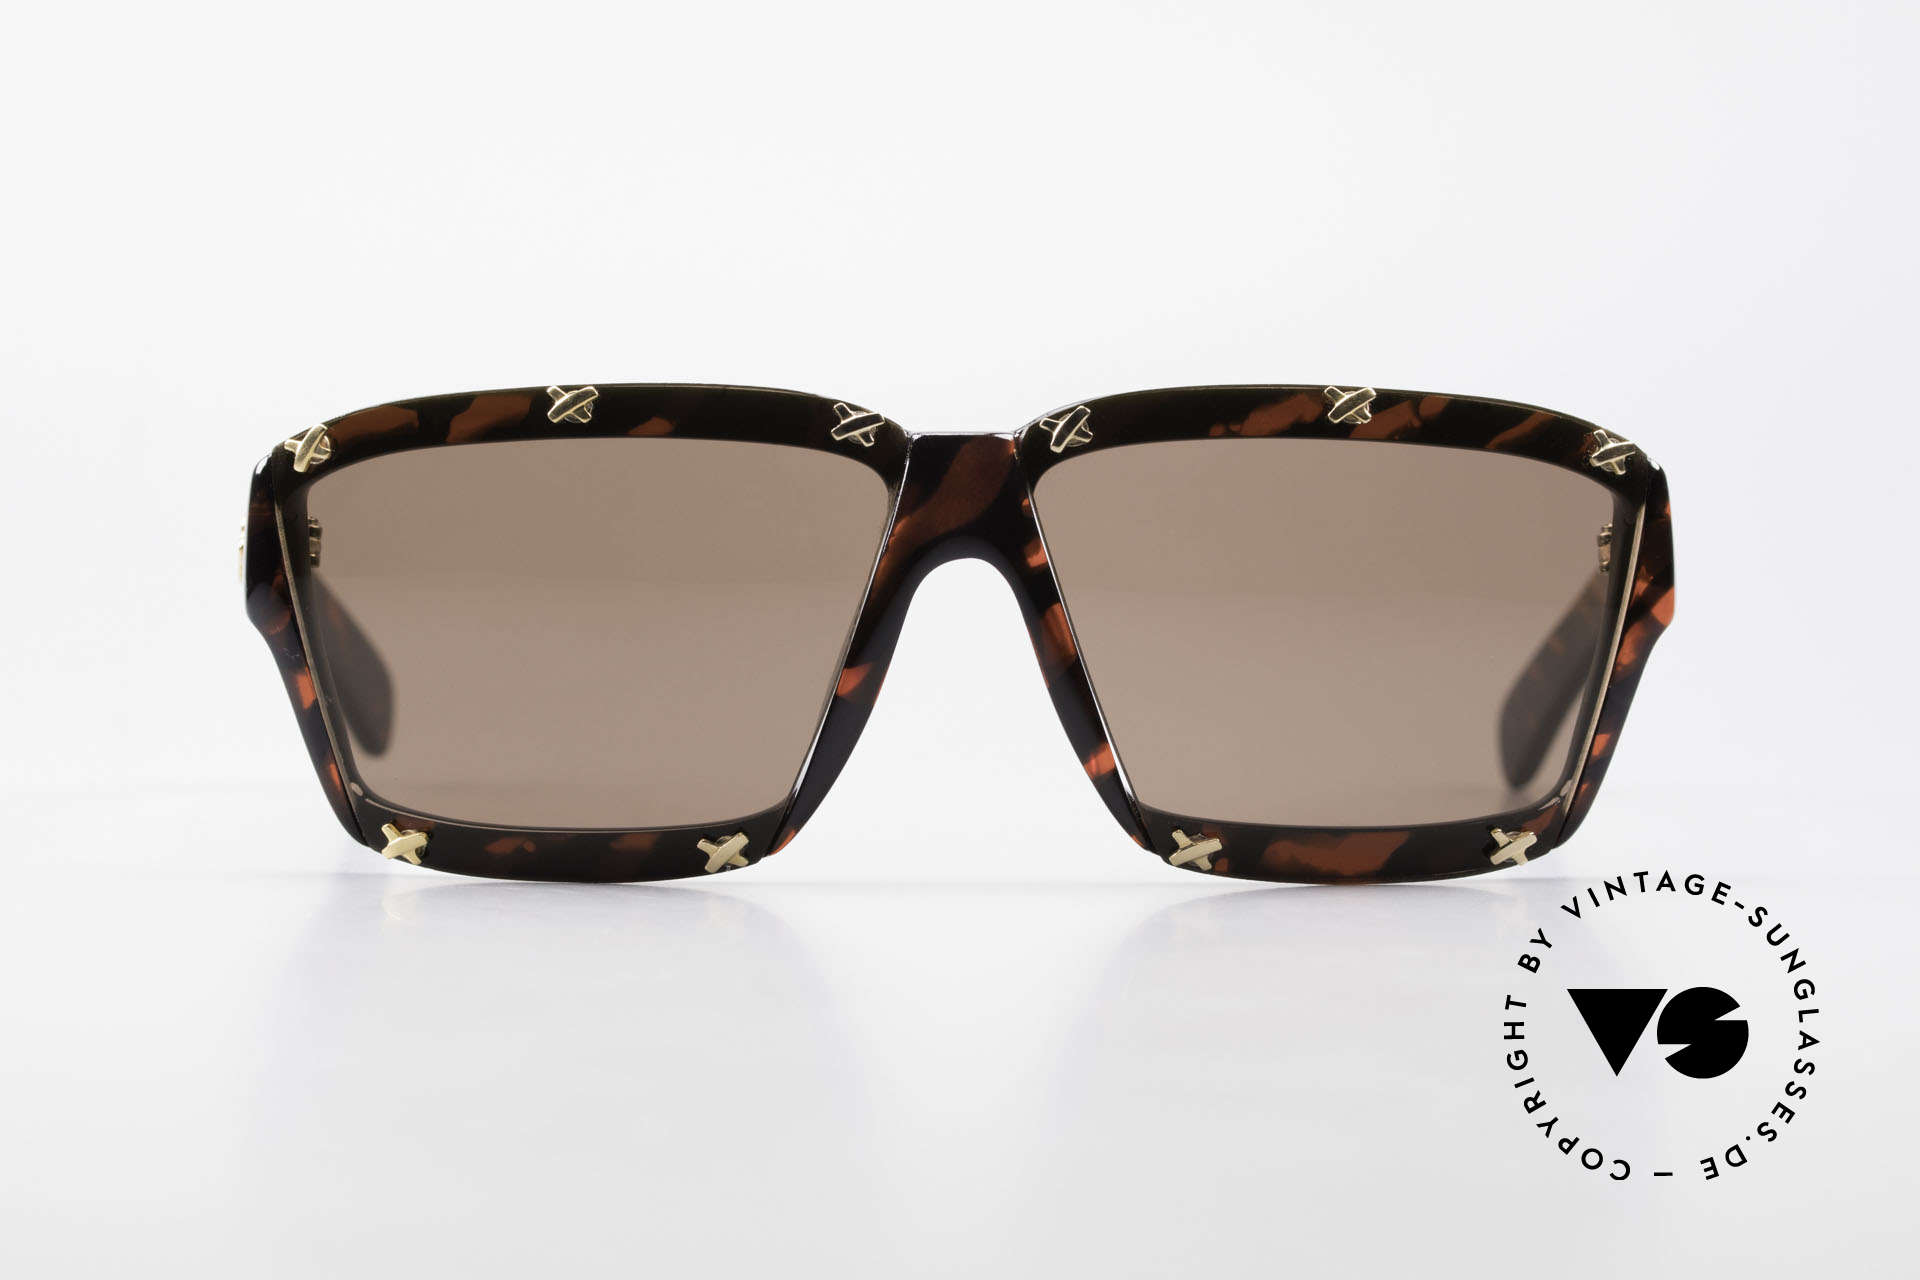 Paloma Picasso 3702 No Retro Sunglasses Vintage, spectacular design meets a brilliant frame pattern, Made for Women